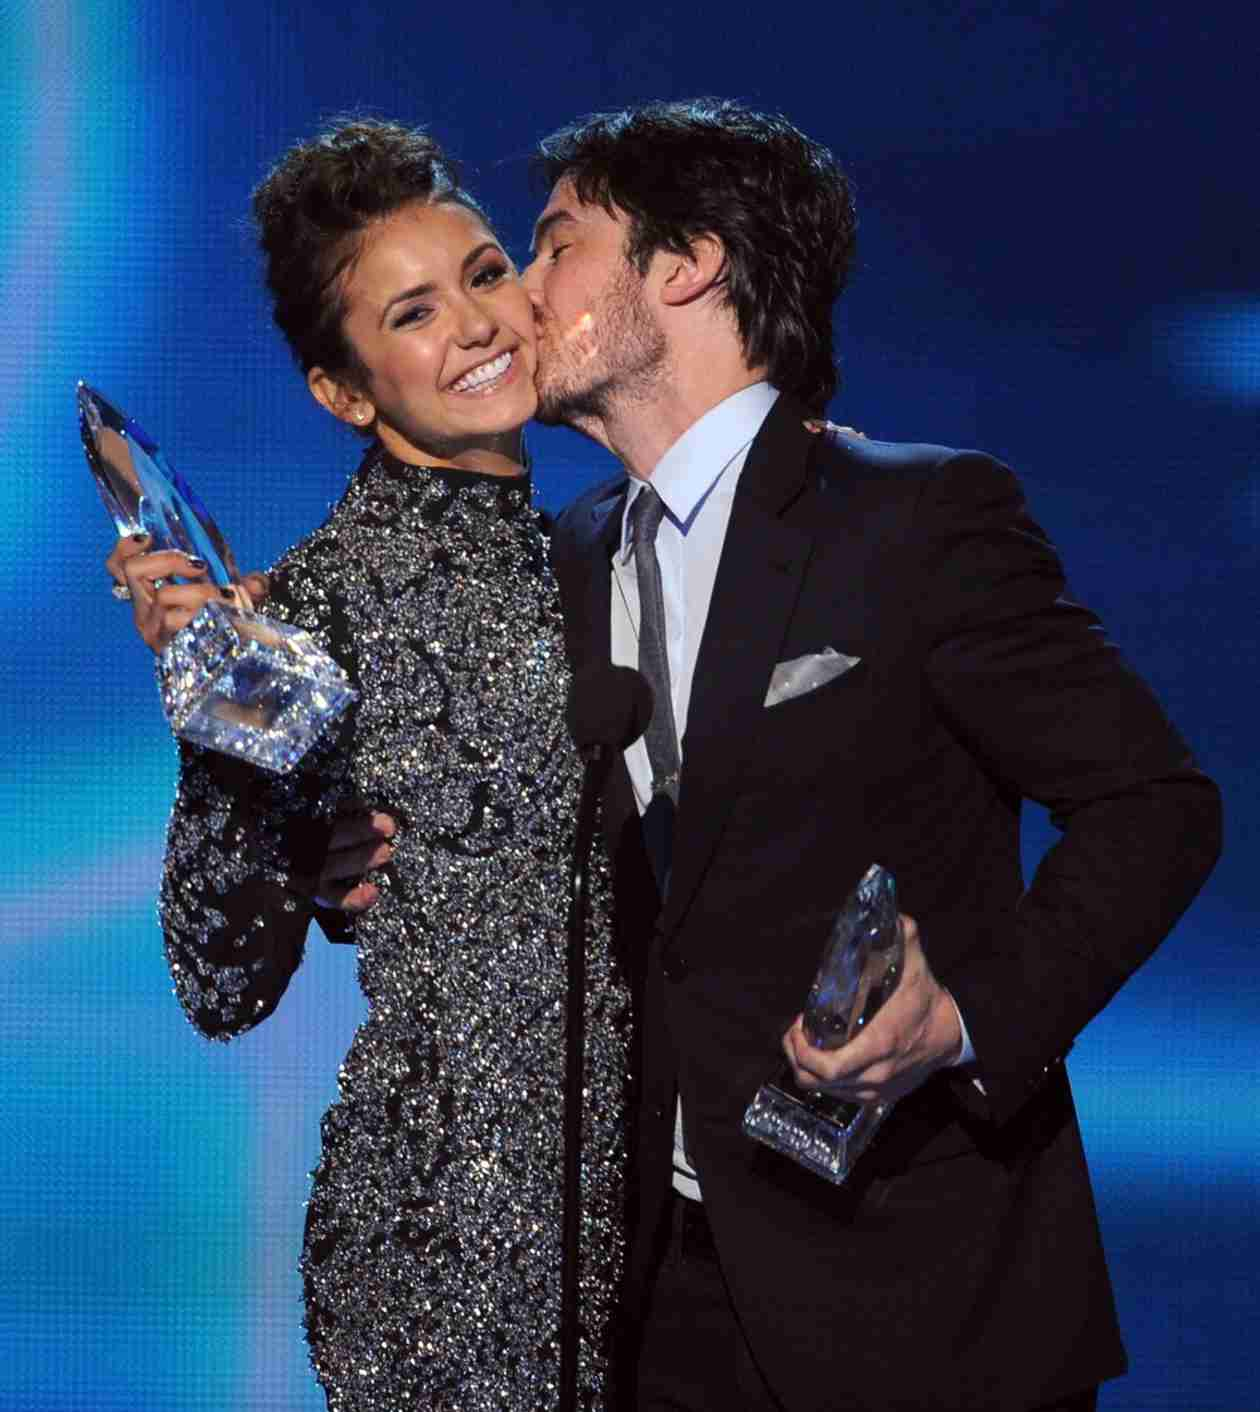 Ian Somerhalder Kisses Nina Dobrev's Cheek After People's Choice Award Win! (PHOTO)